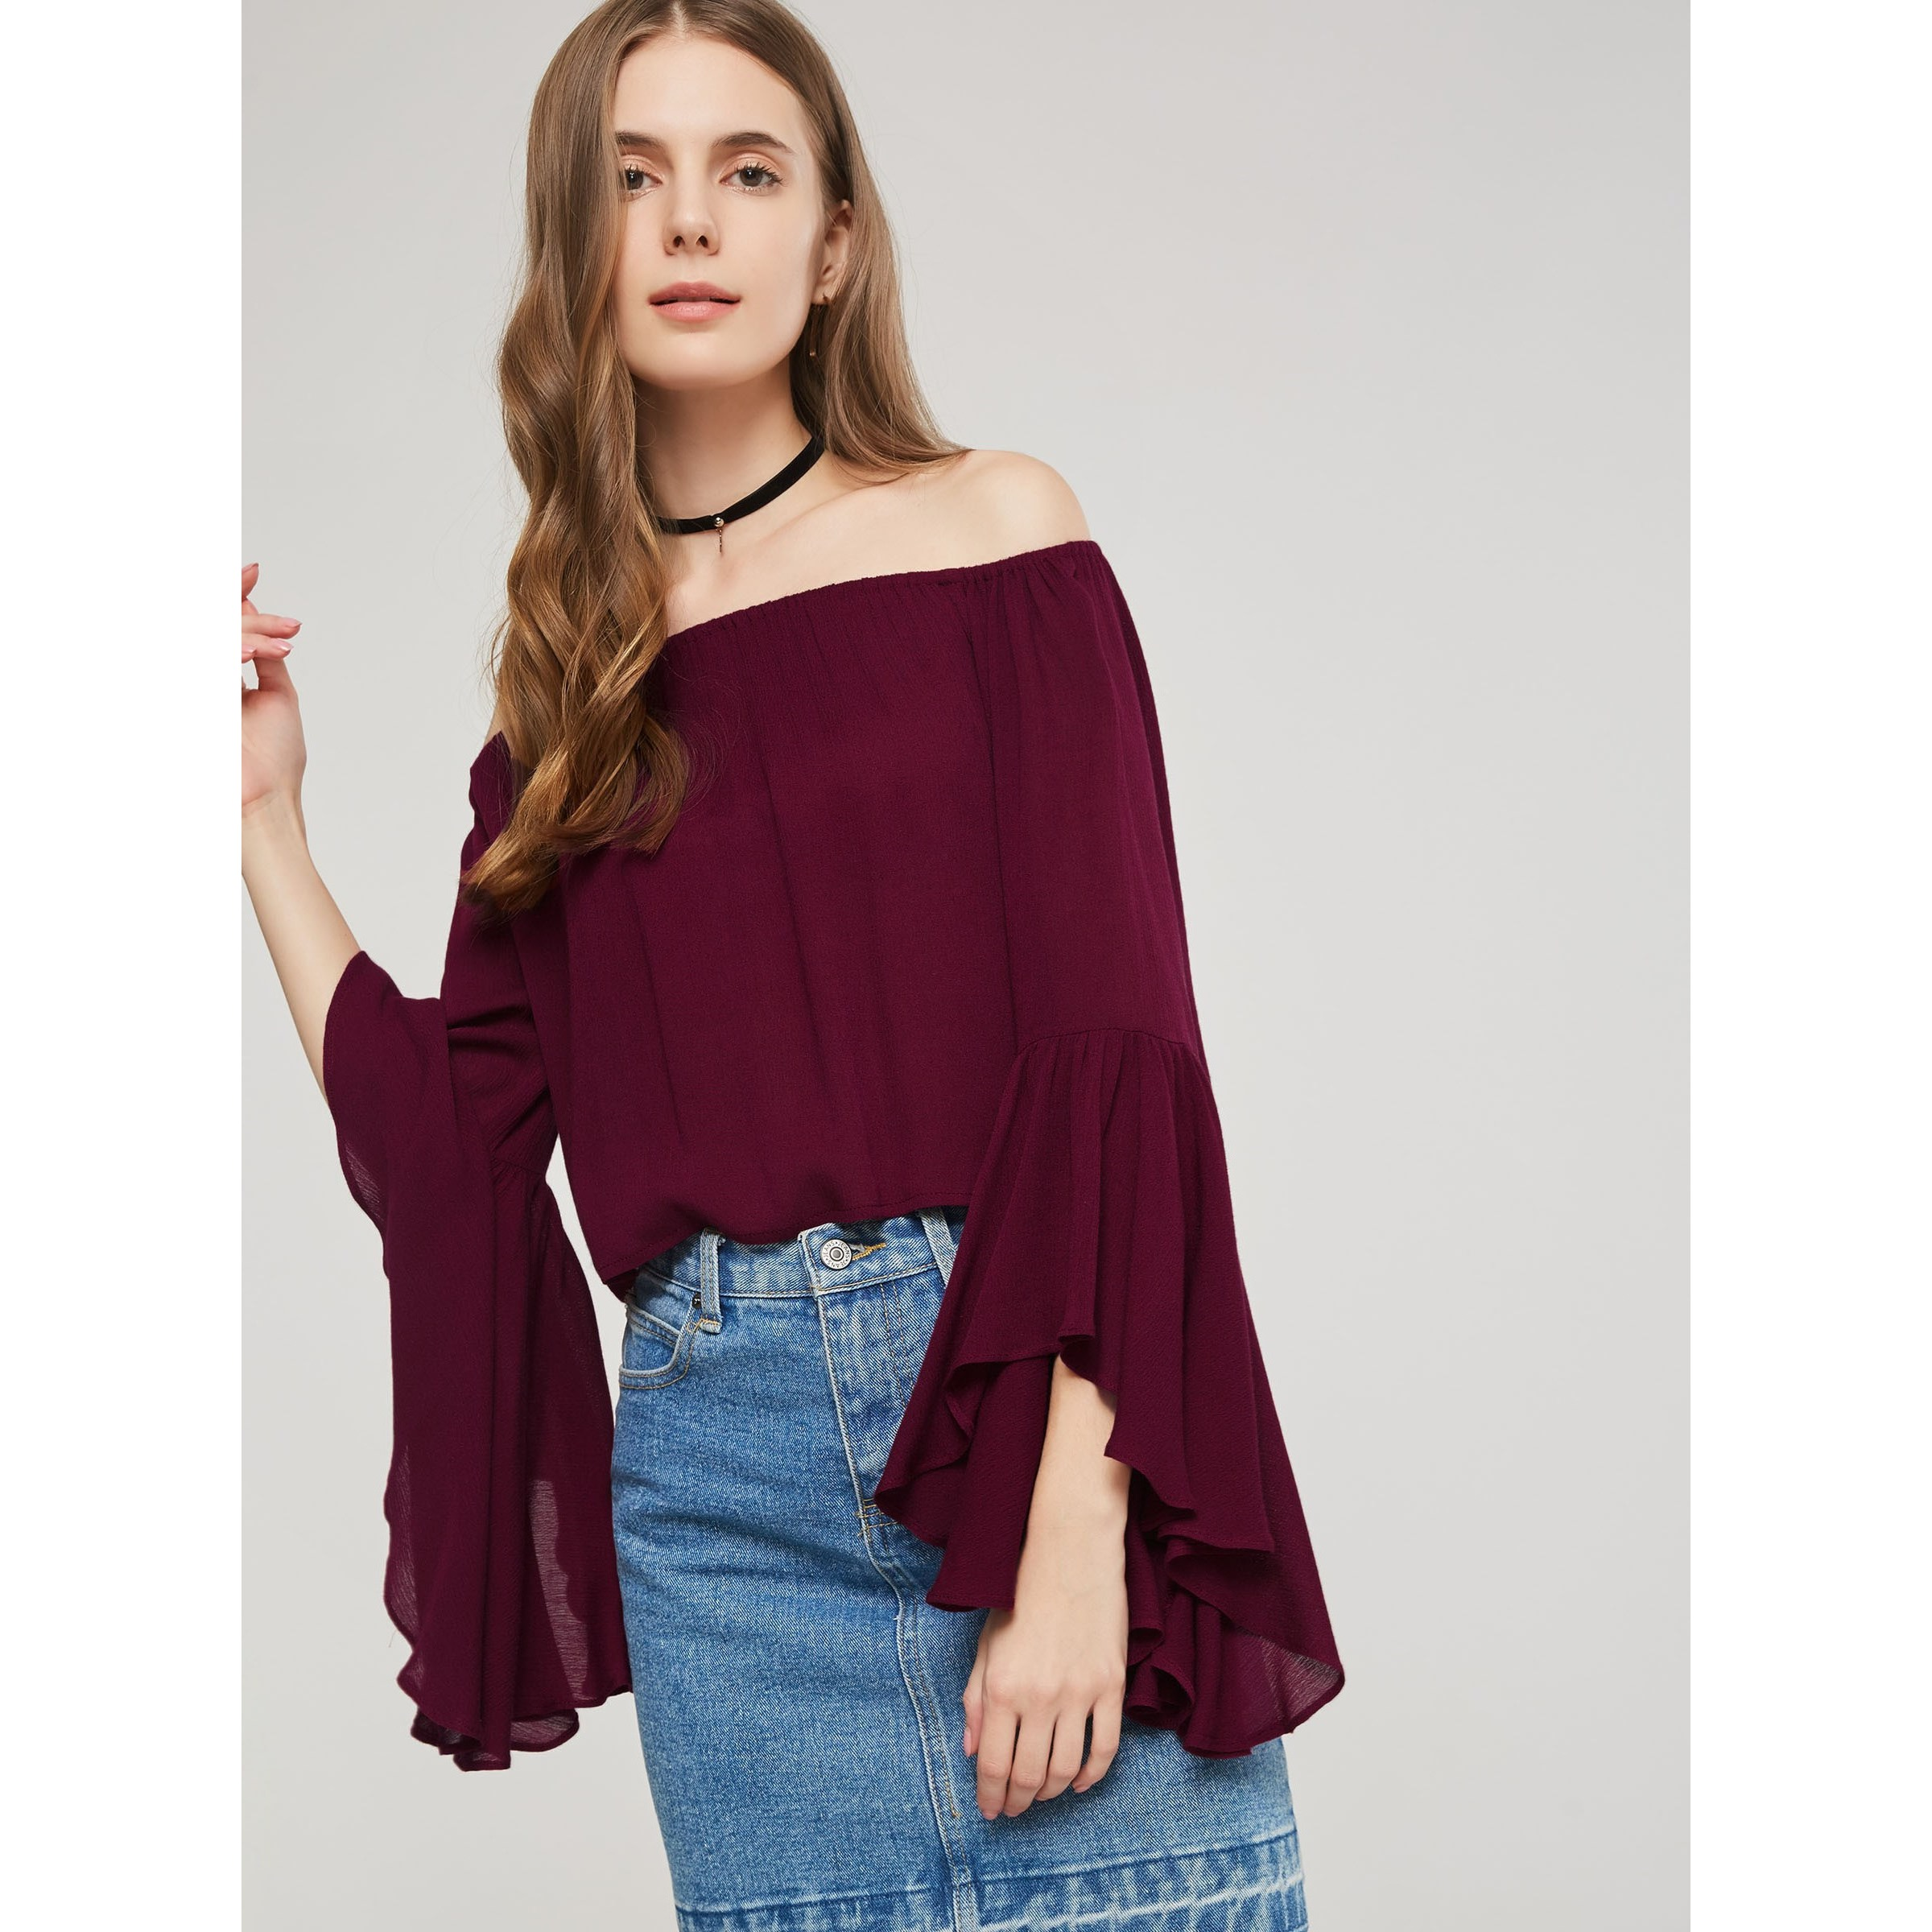 Women Blouses Gothic Casual Elegant Red Sexy Loose Cotton Flare Sleeve Plain Pleated Female Fashion Simple Hot Cheap Shirts